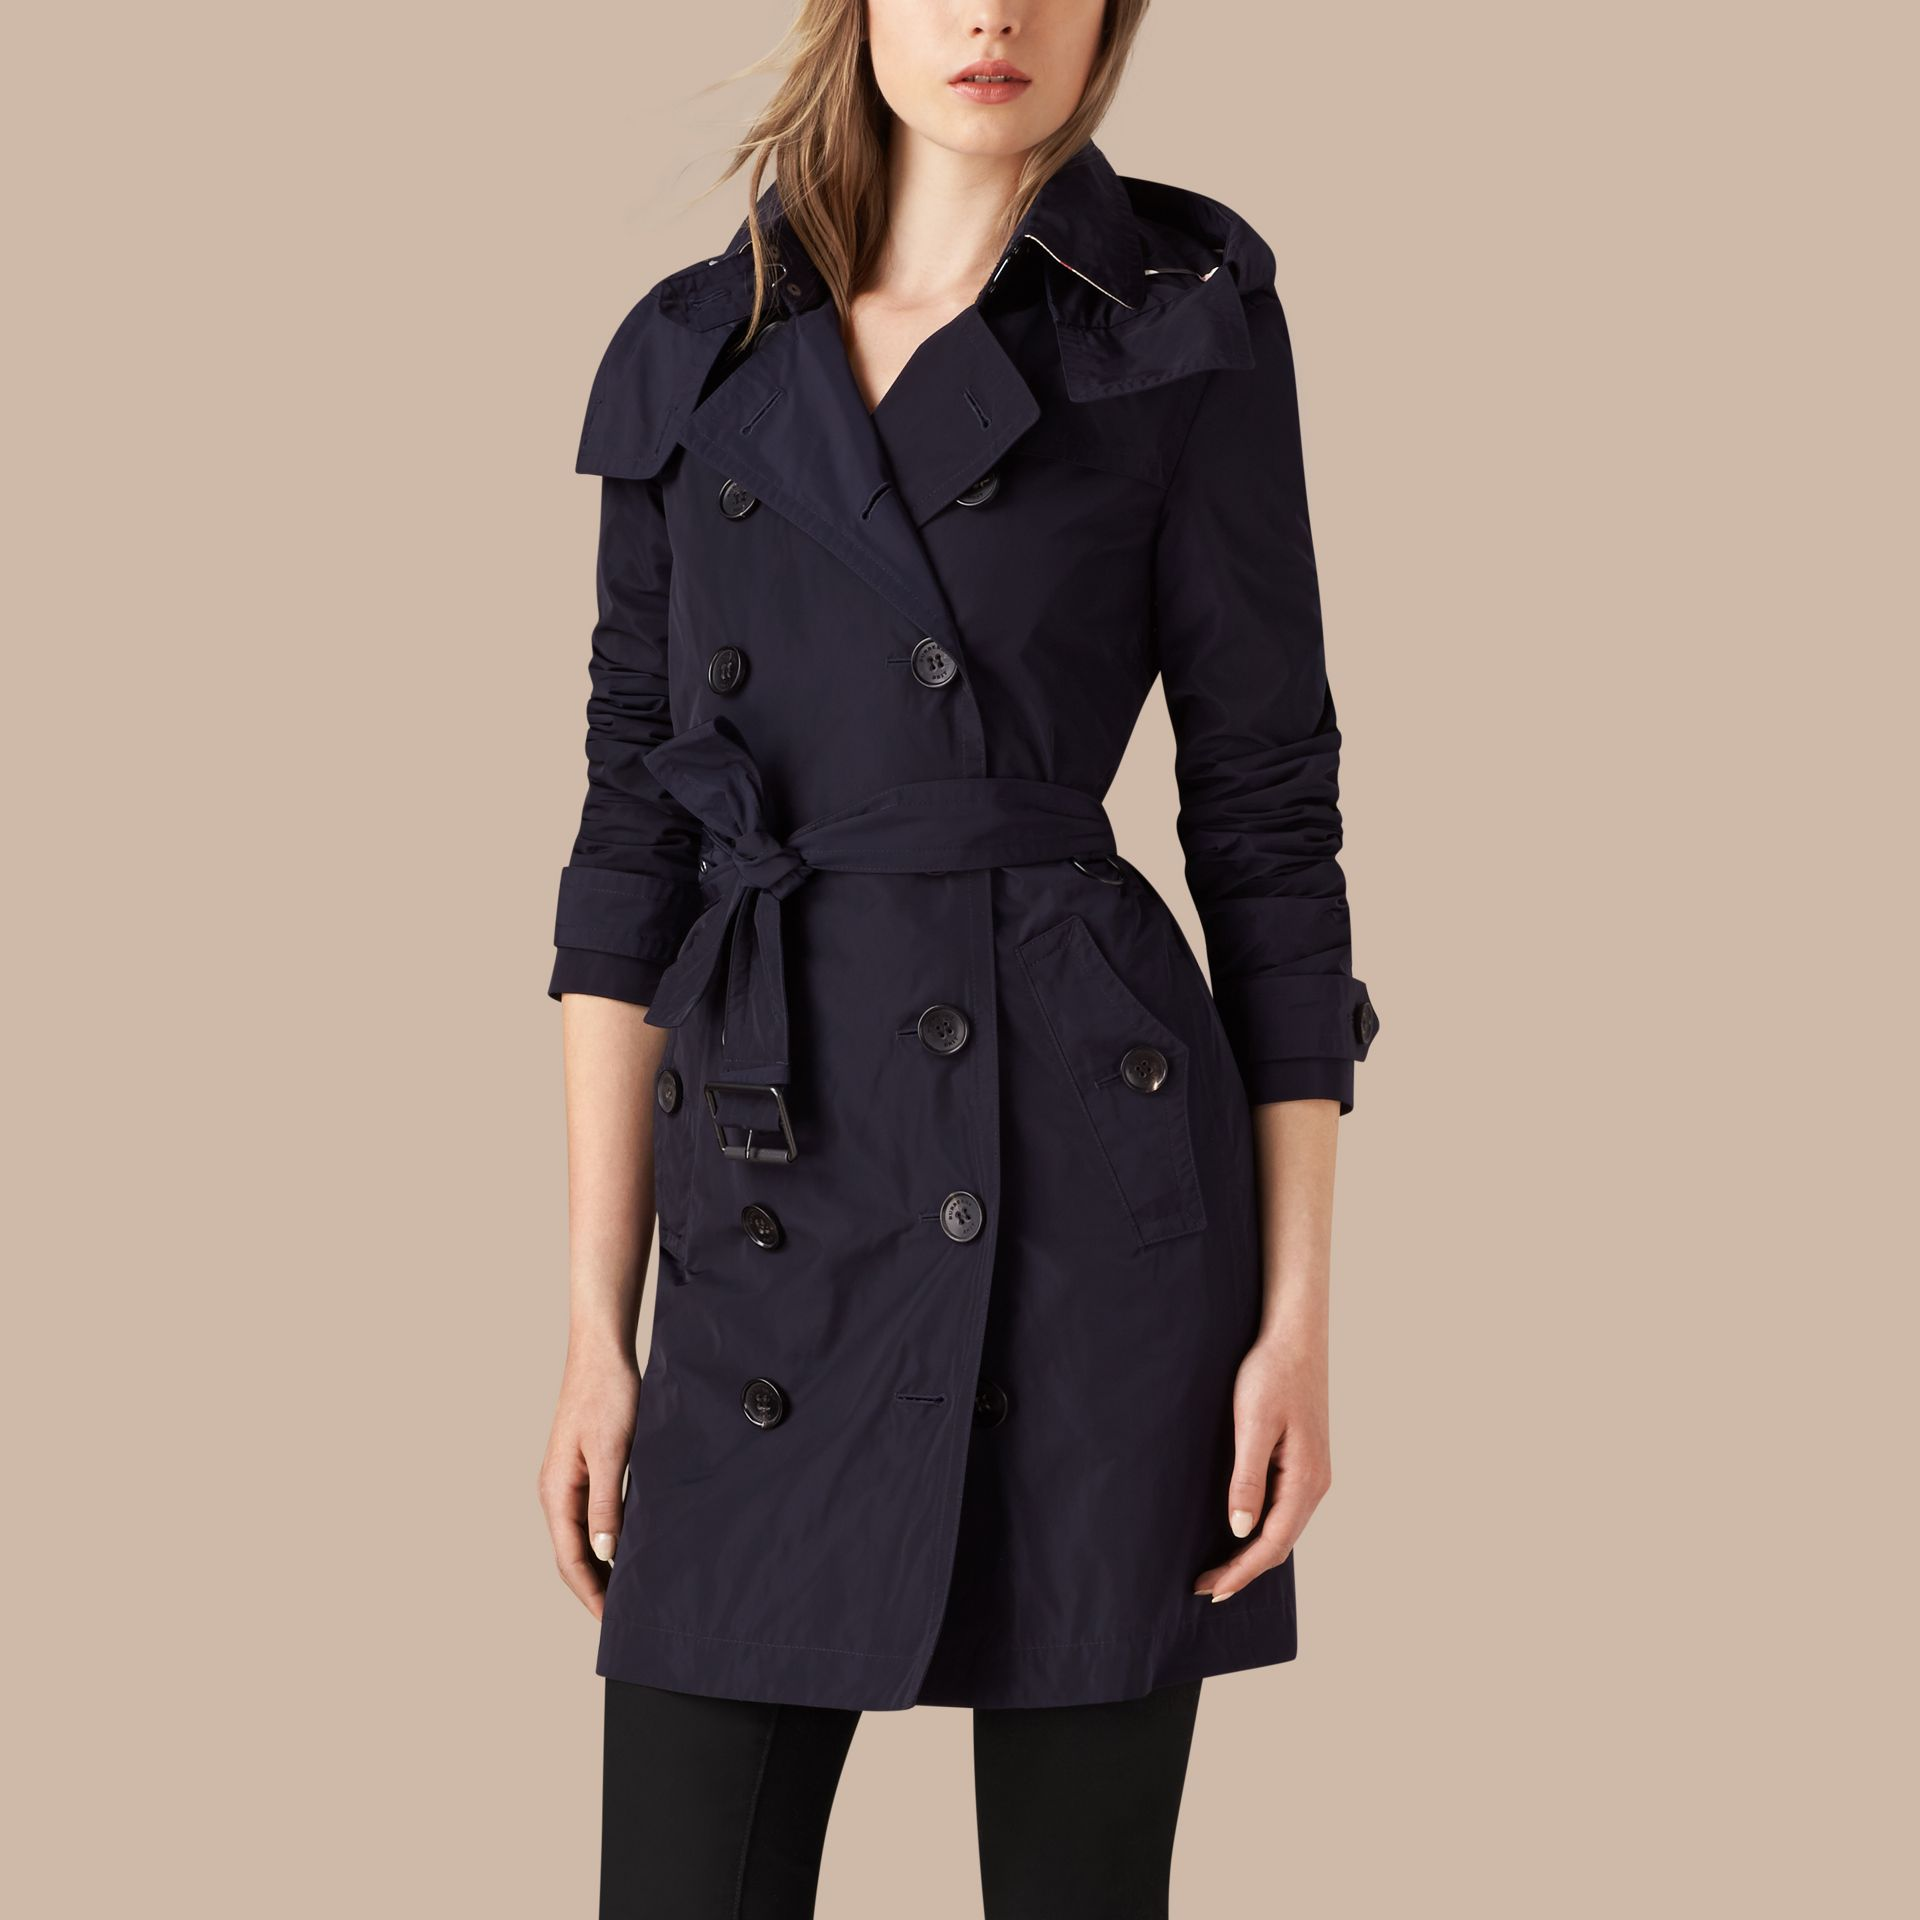 Taffeta Trench Coat with Detachable Hood in Navy - gallery image 4